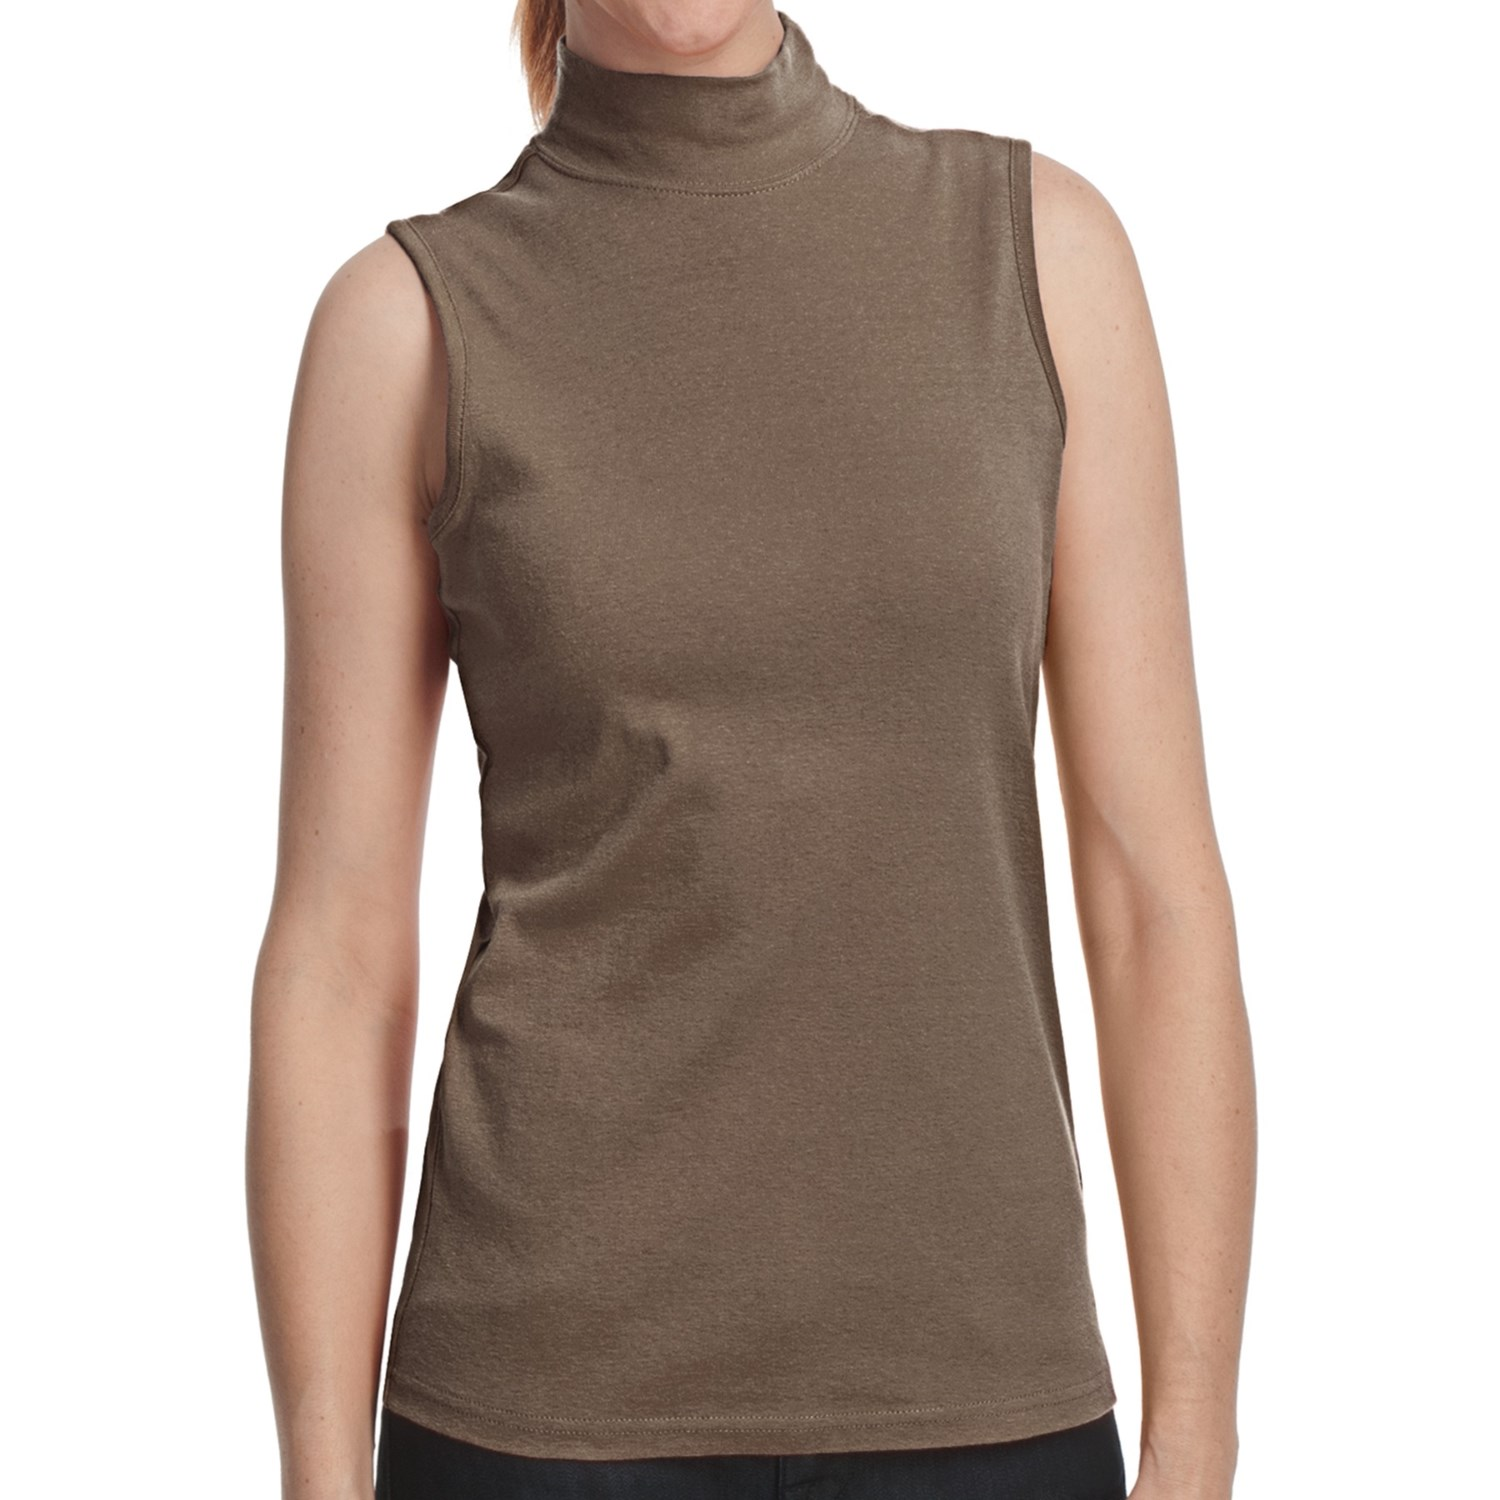 Mock neck shirt cotton sleeveless for women save 69 for Sleeveless mock turtleneck shirts